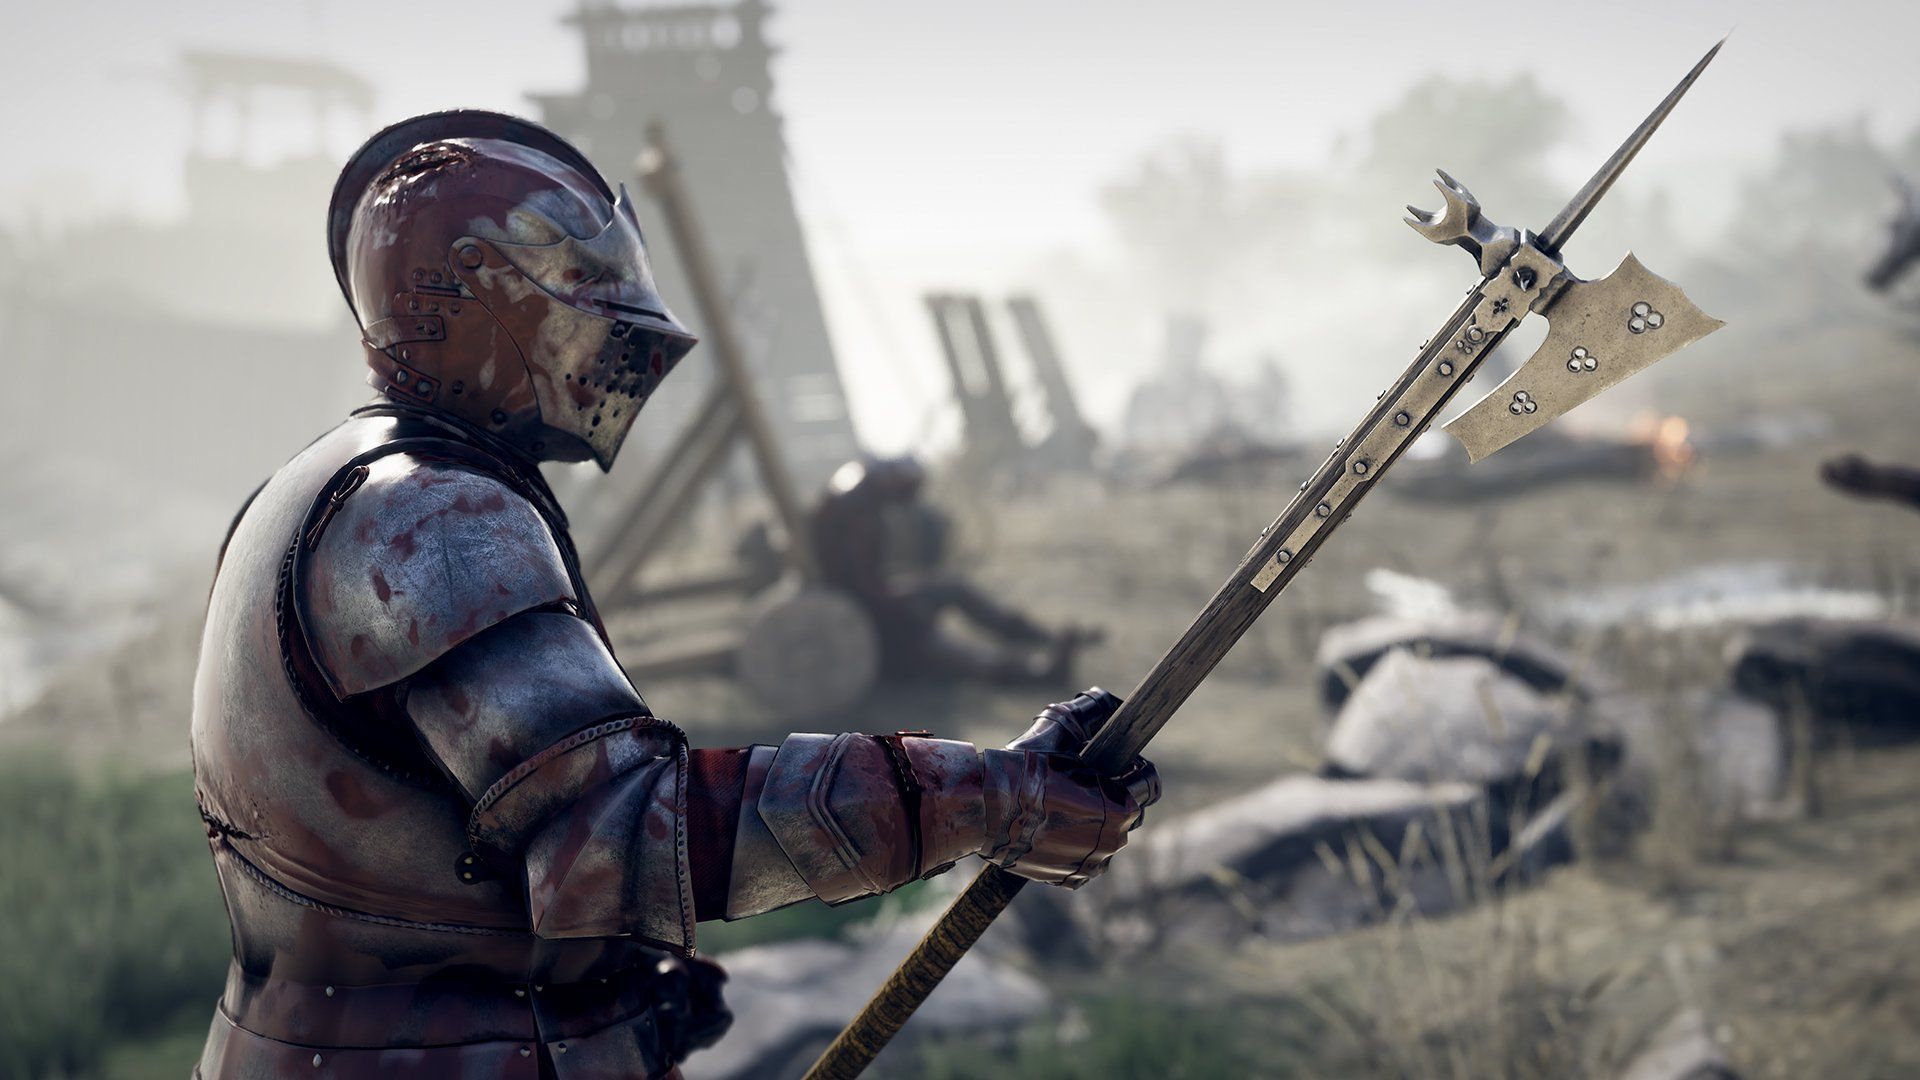 Mordhau Controversy Addressed In Statement From Developers Medieval Battle Game Reviews